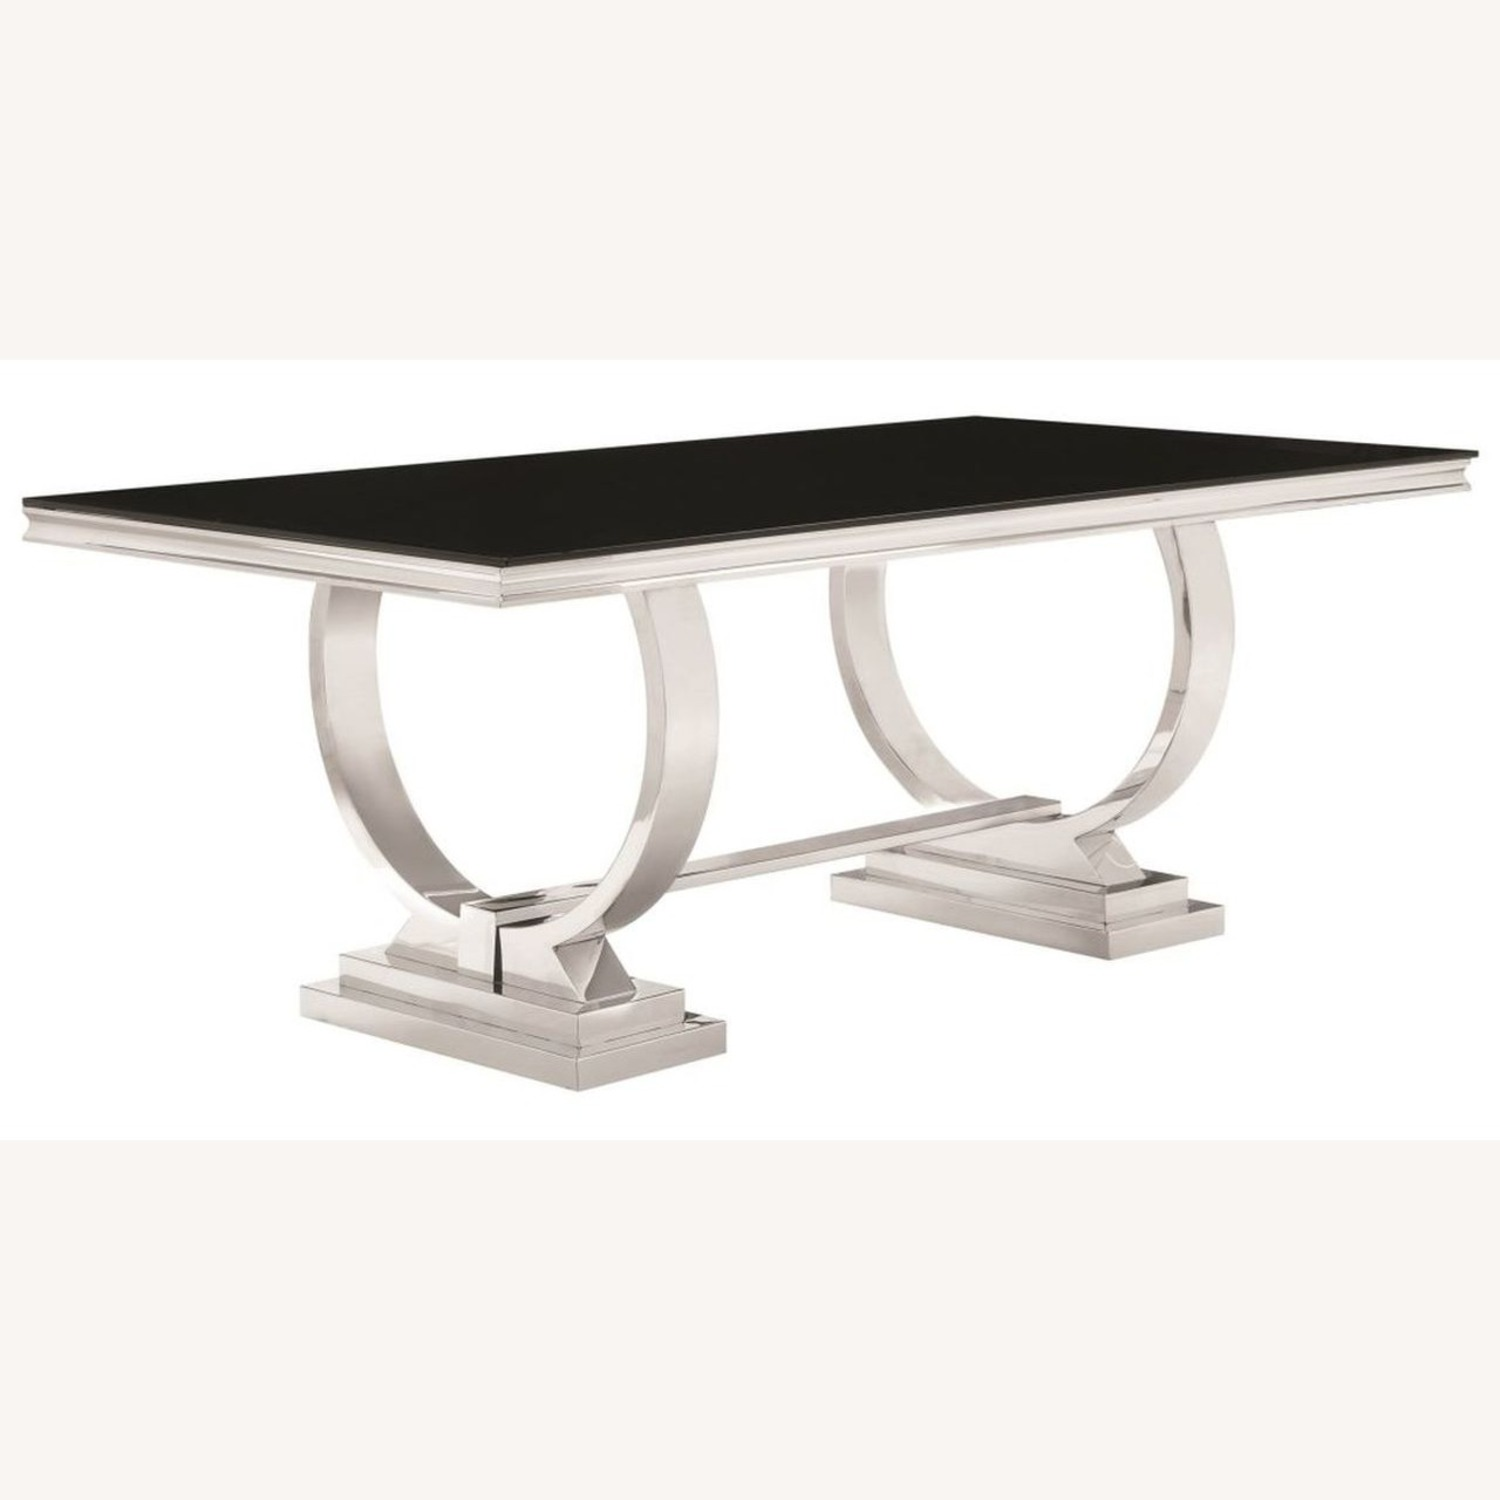 Modern Dining Table In Chrome Finish - image-0